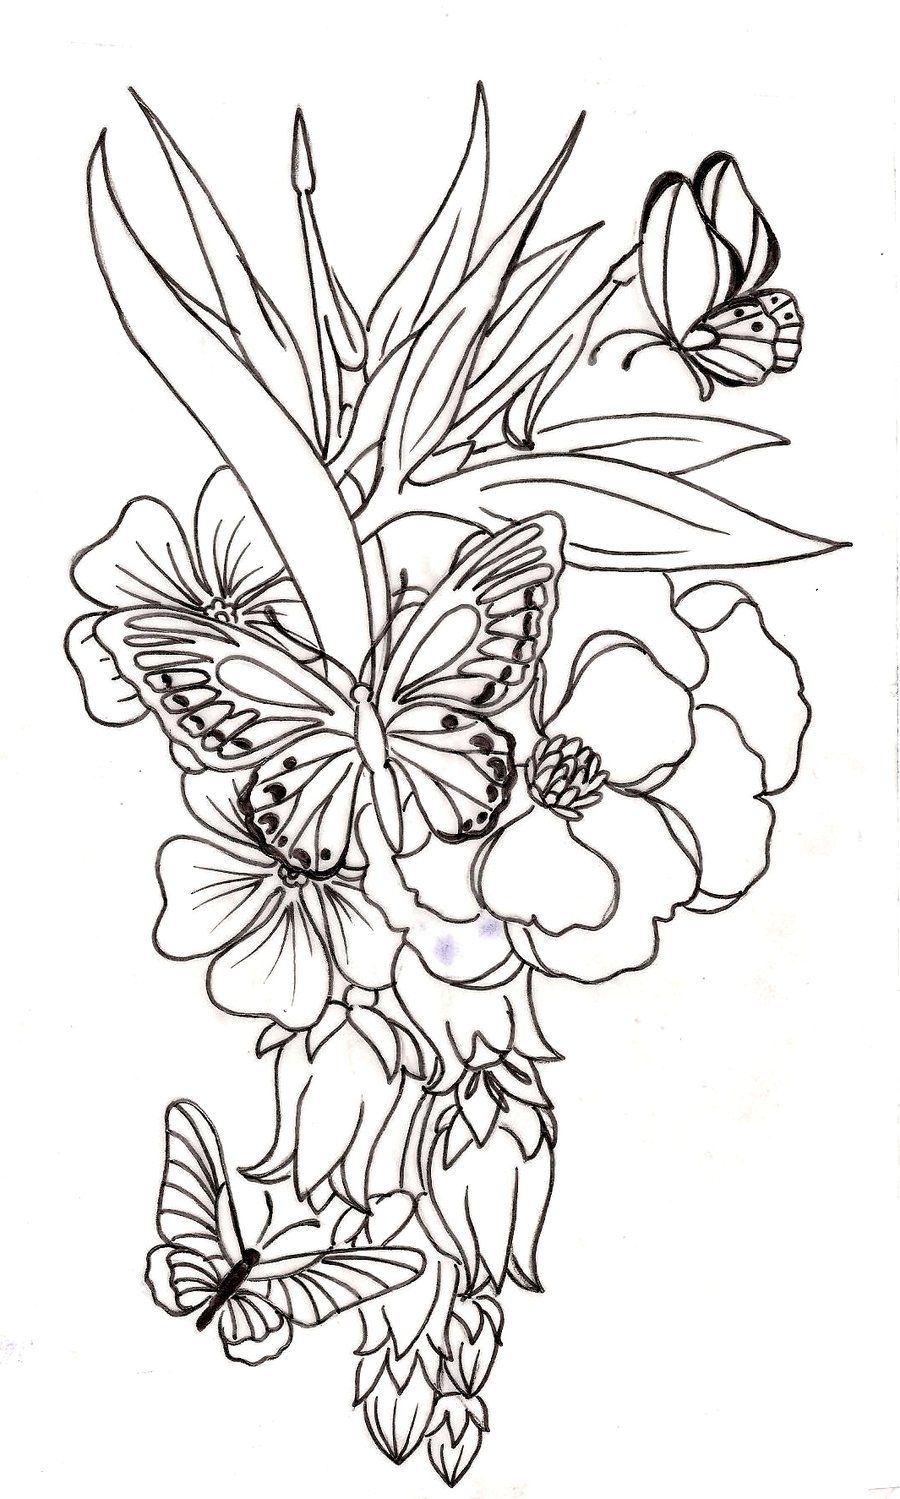 Samurai skull colouring pages page 2 - Butterfly And Flower Tattoo By Metacharis On Deviantart